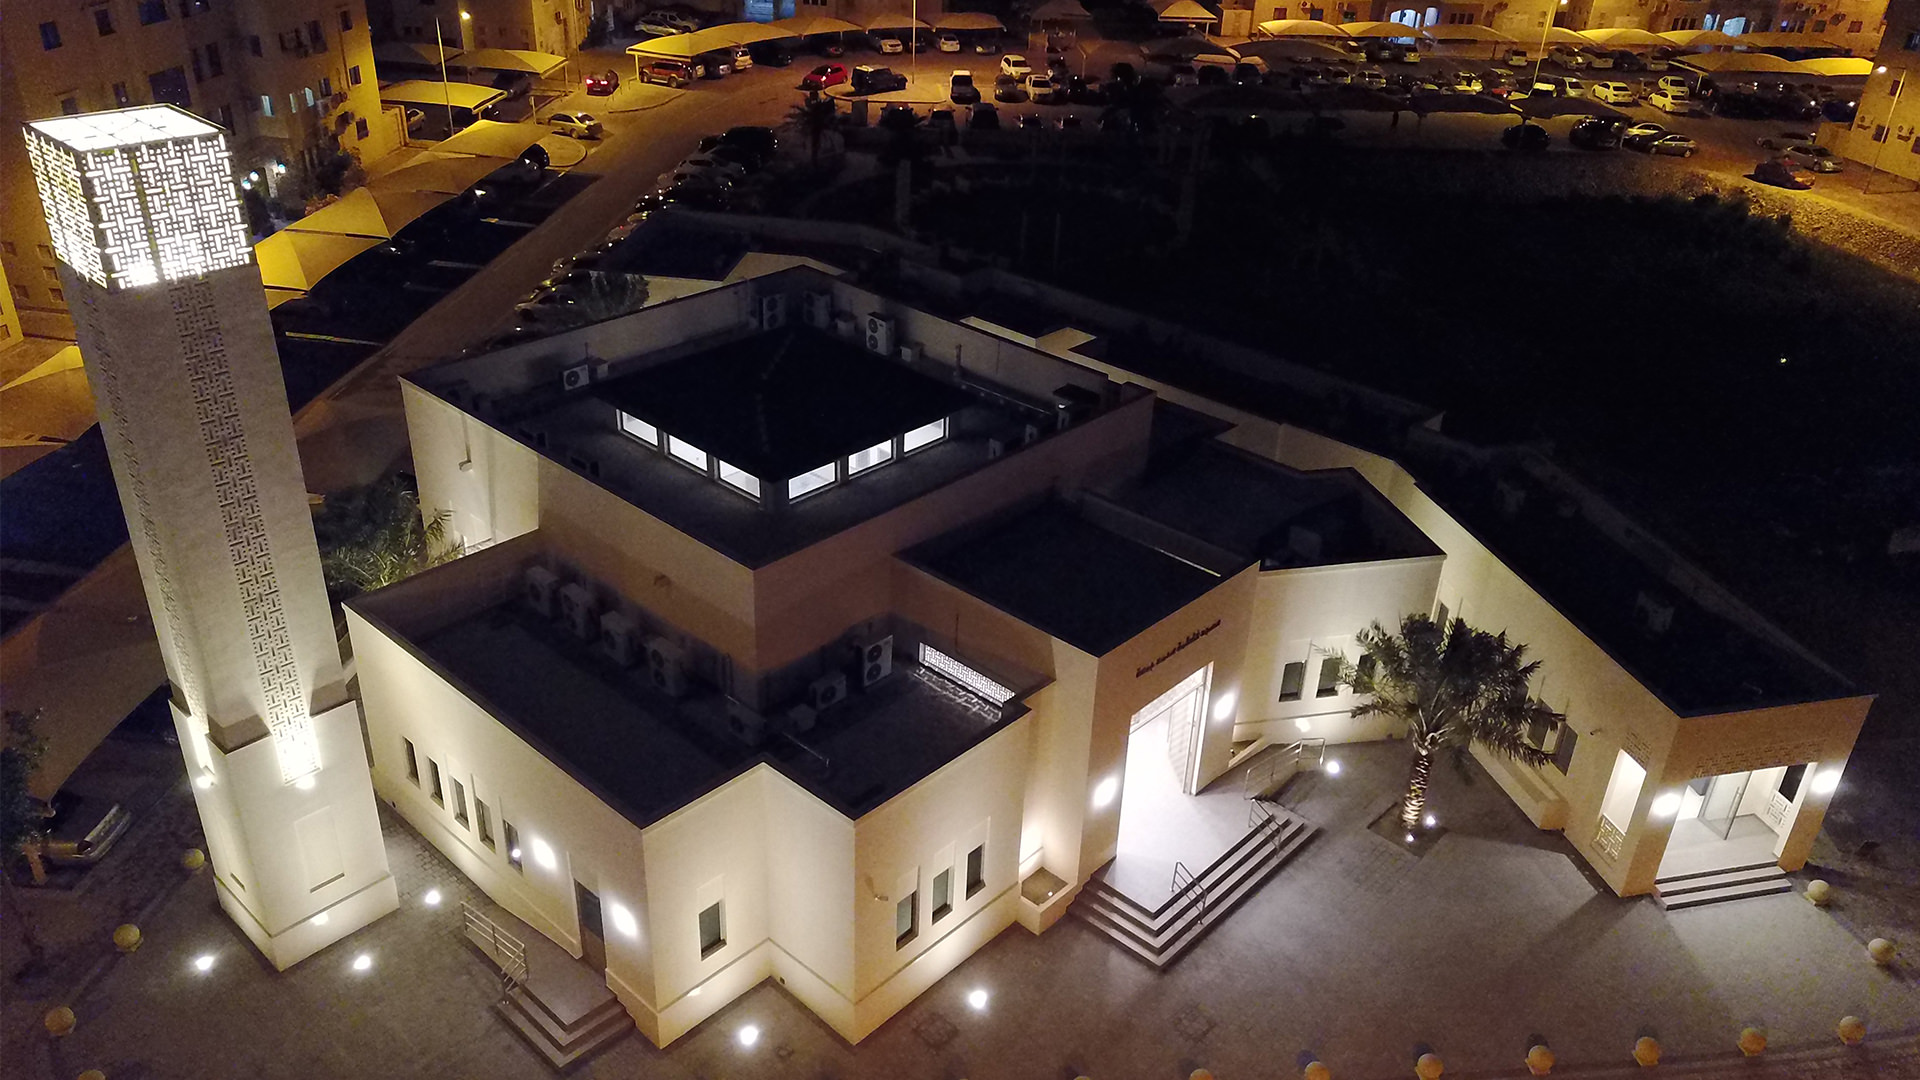 Fatima Juma Mosque Building Design And Supervision Services by MSCEB